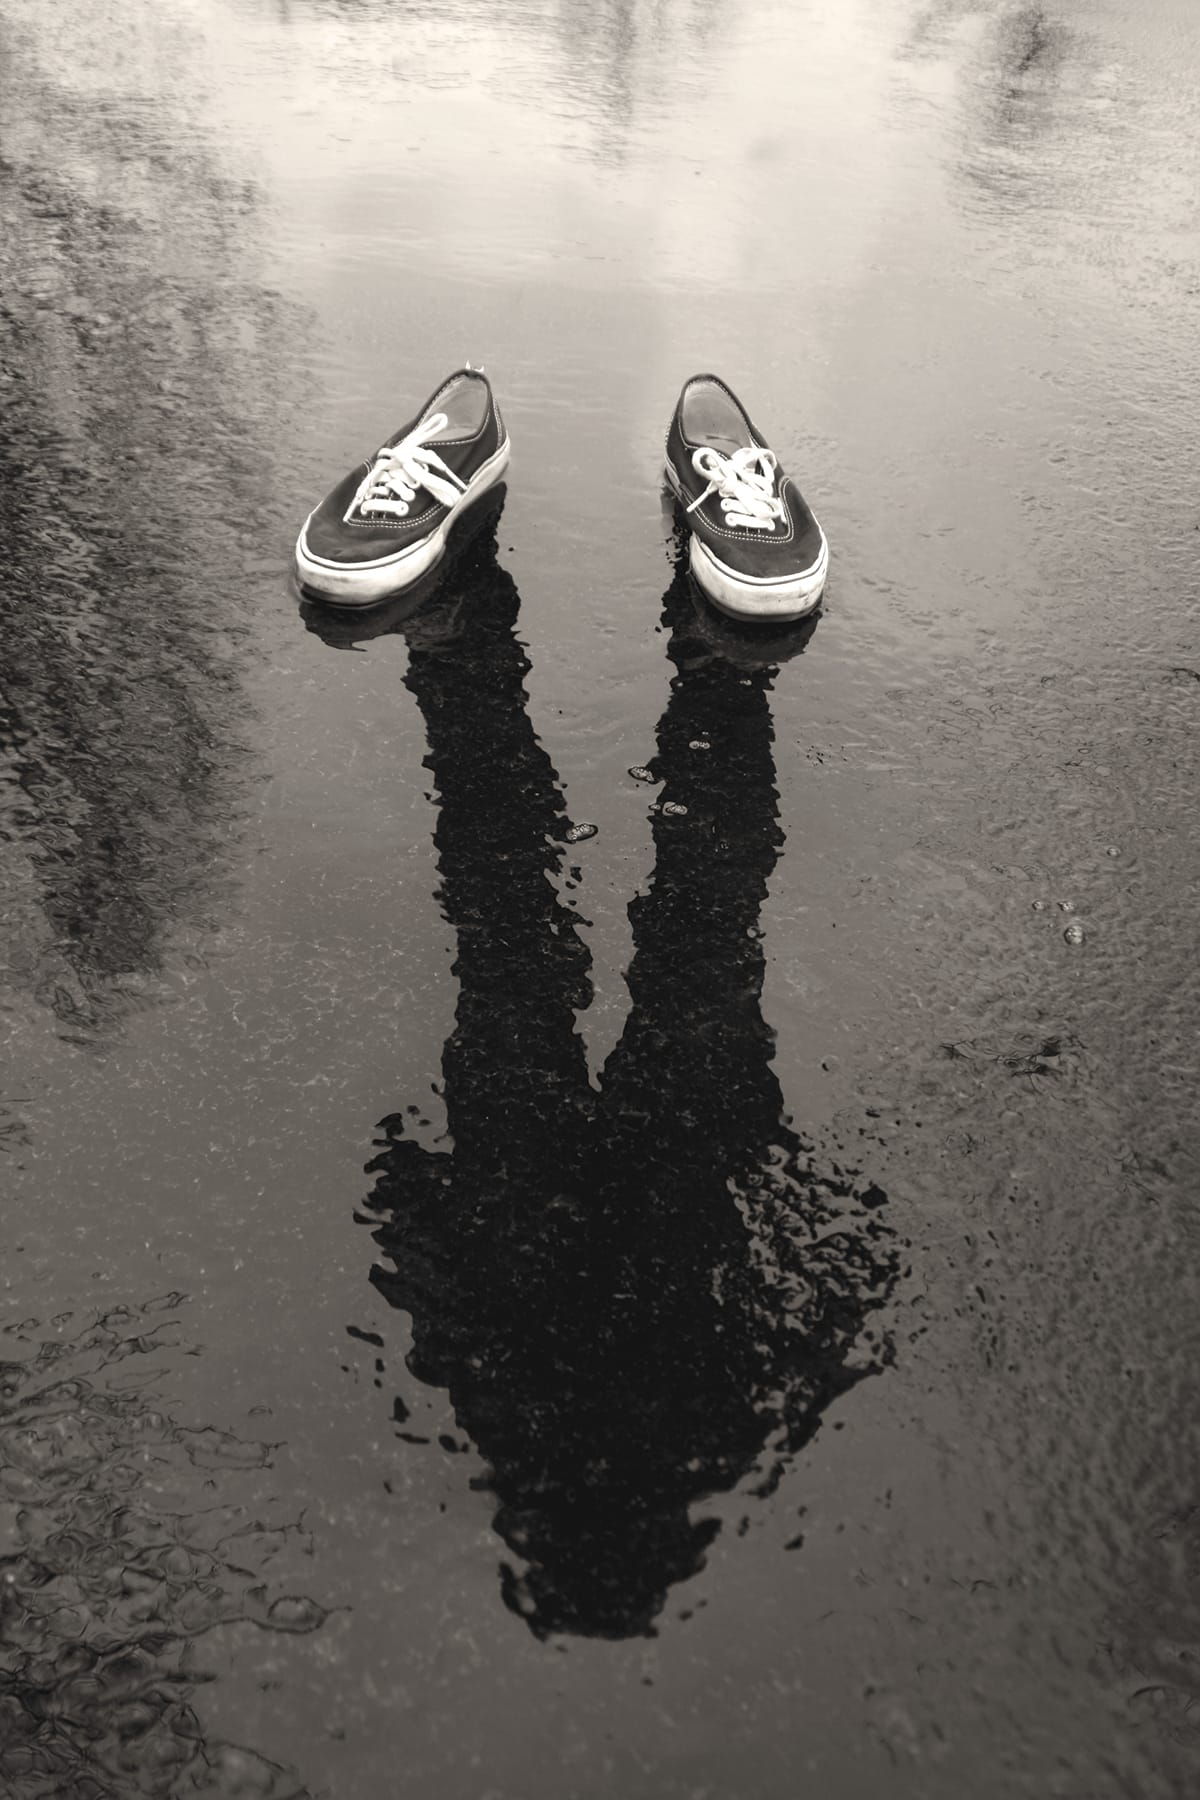 A black-and-white photo of a man's reflection on wet pavement with a pair of shoes on top of the reflection.